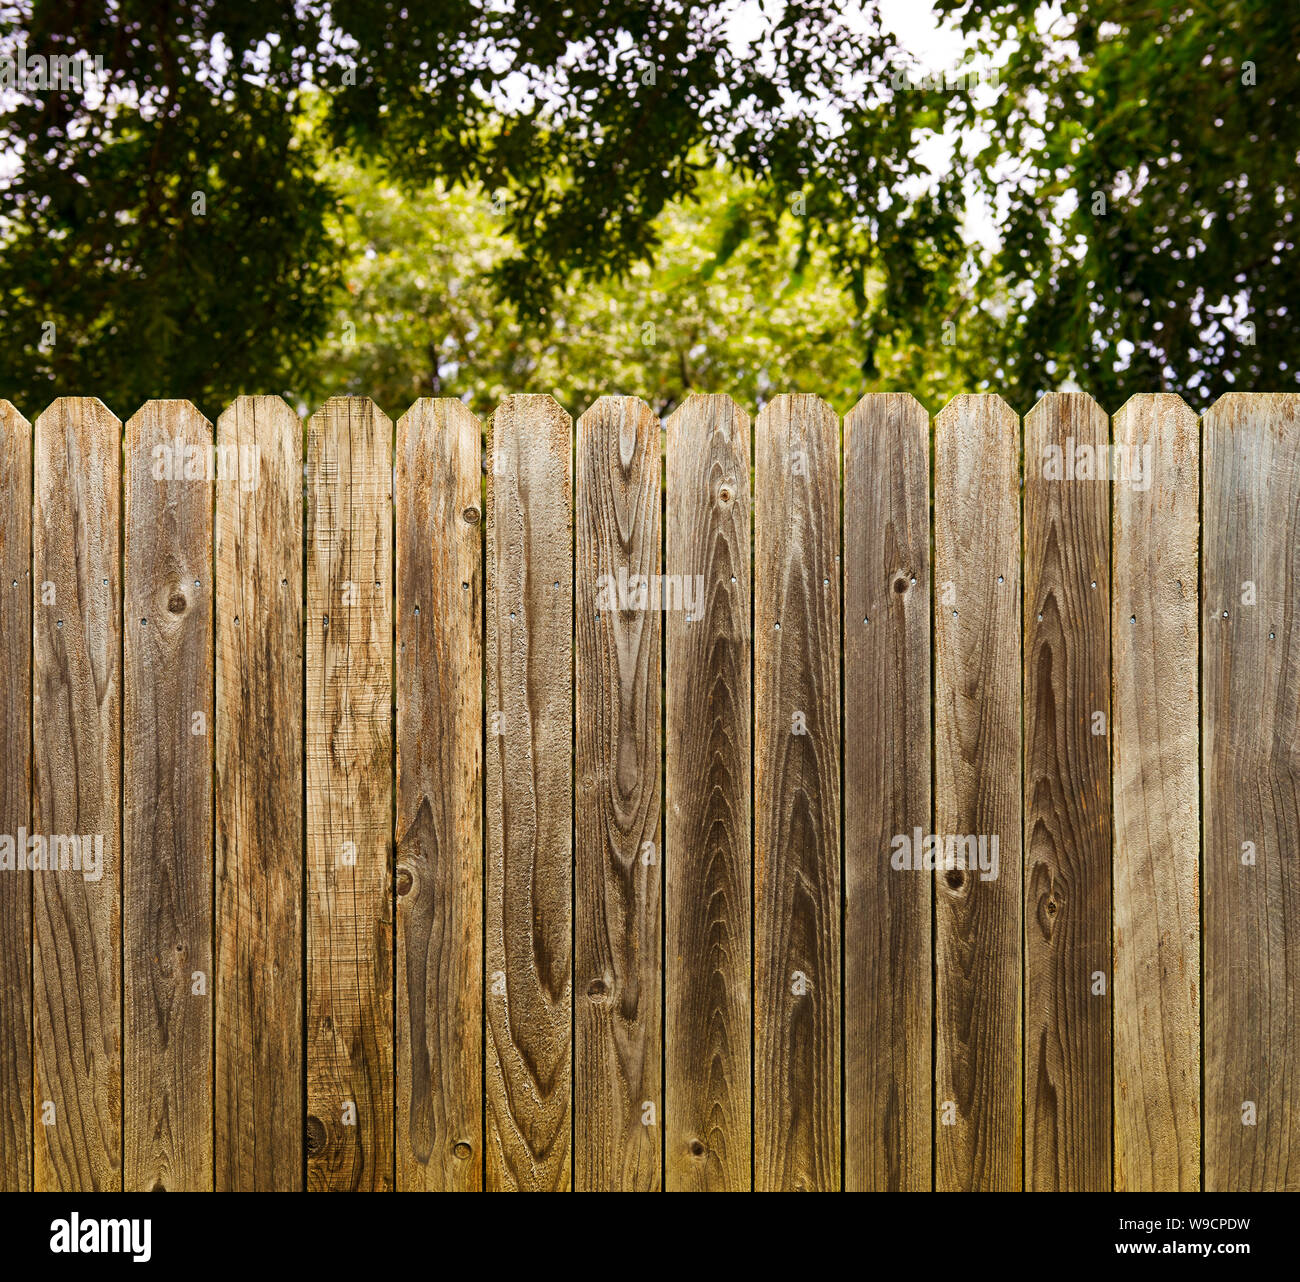 Privacy and security provided by rustic wood fence with green shade tree background Stock Photo